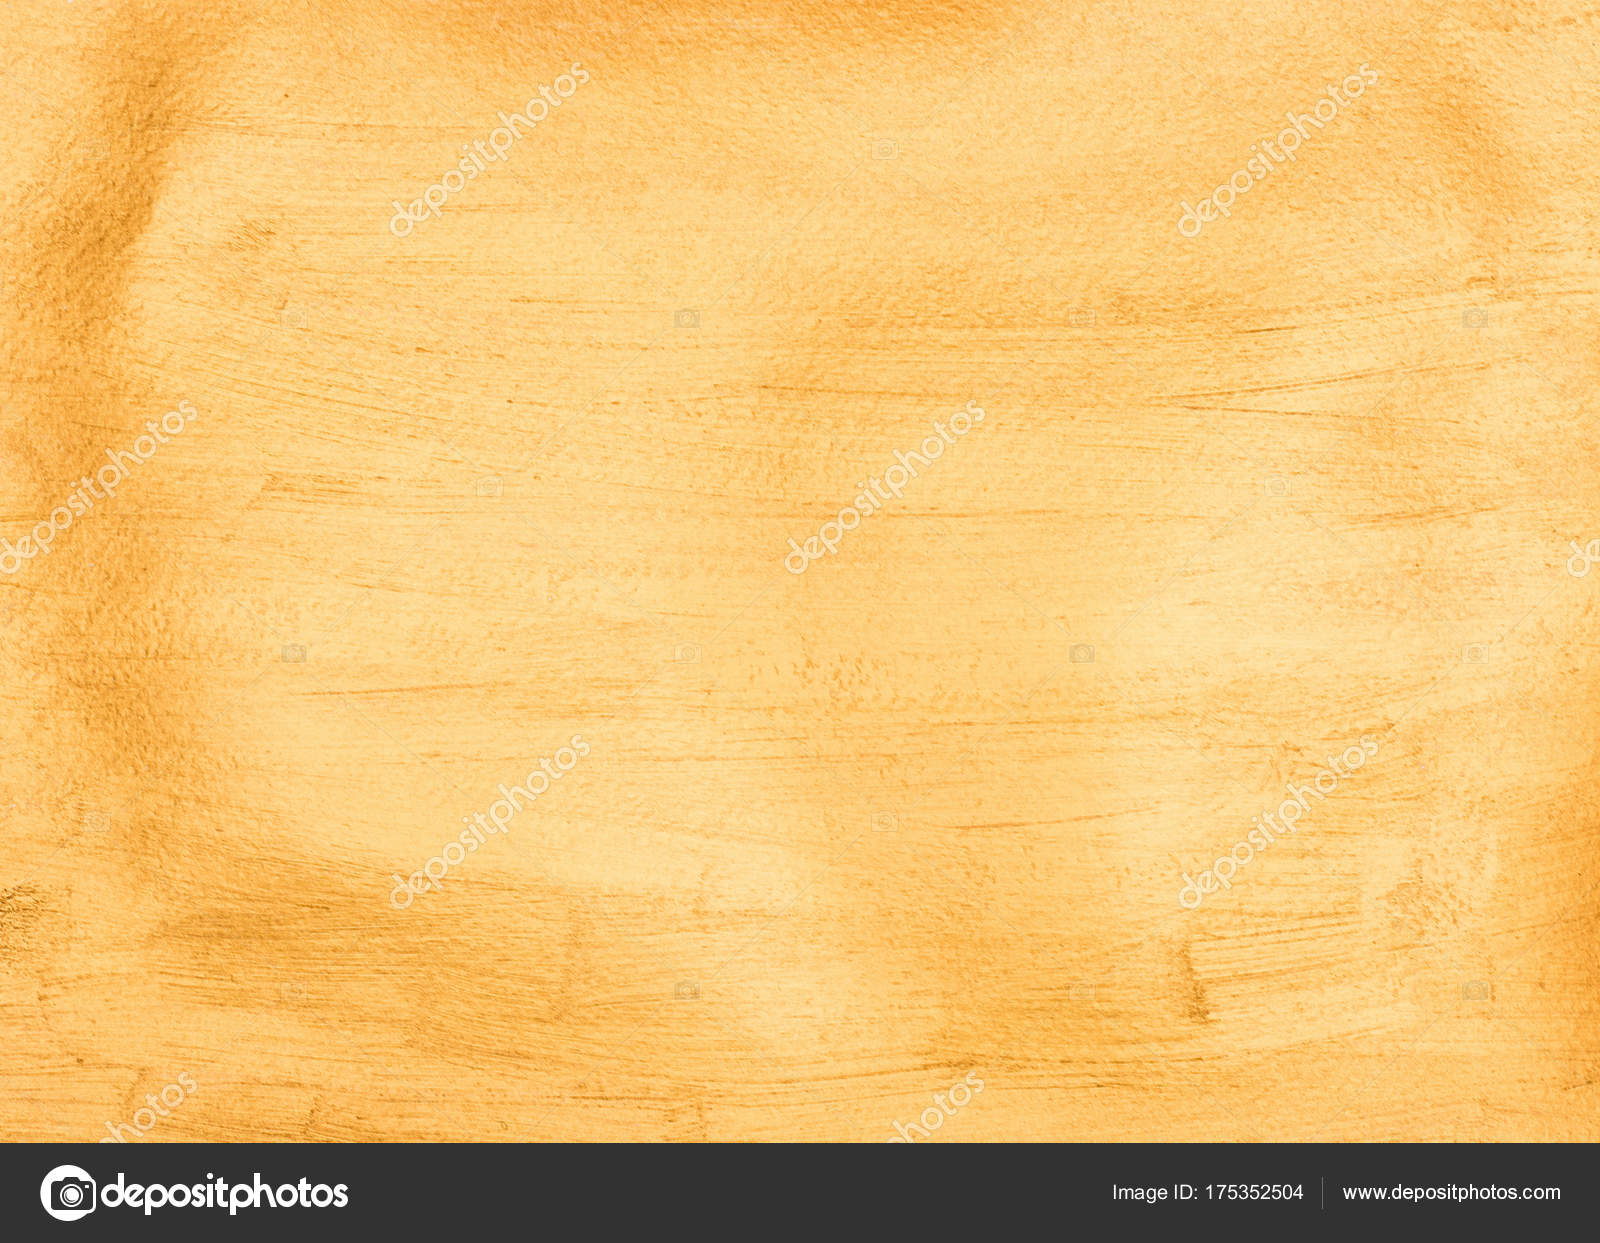 Full Frame Bright Yellow Wallpaper Texture Background Stock Photo